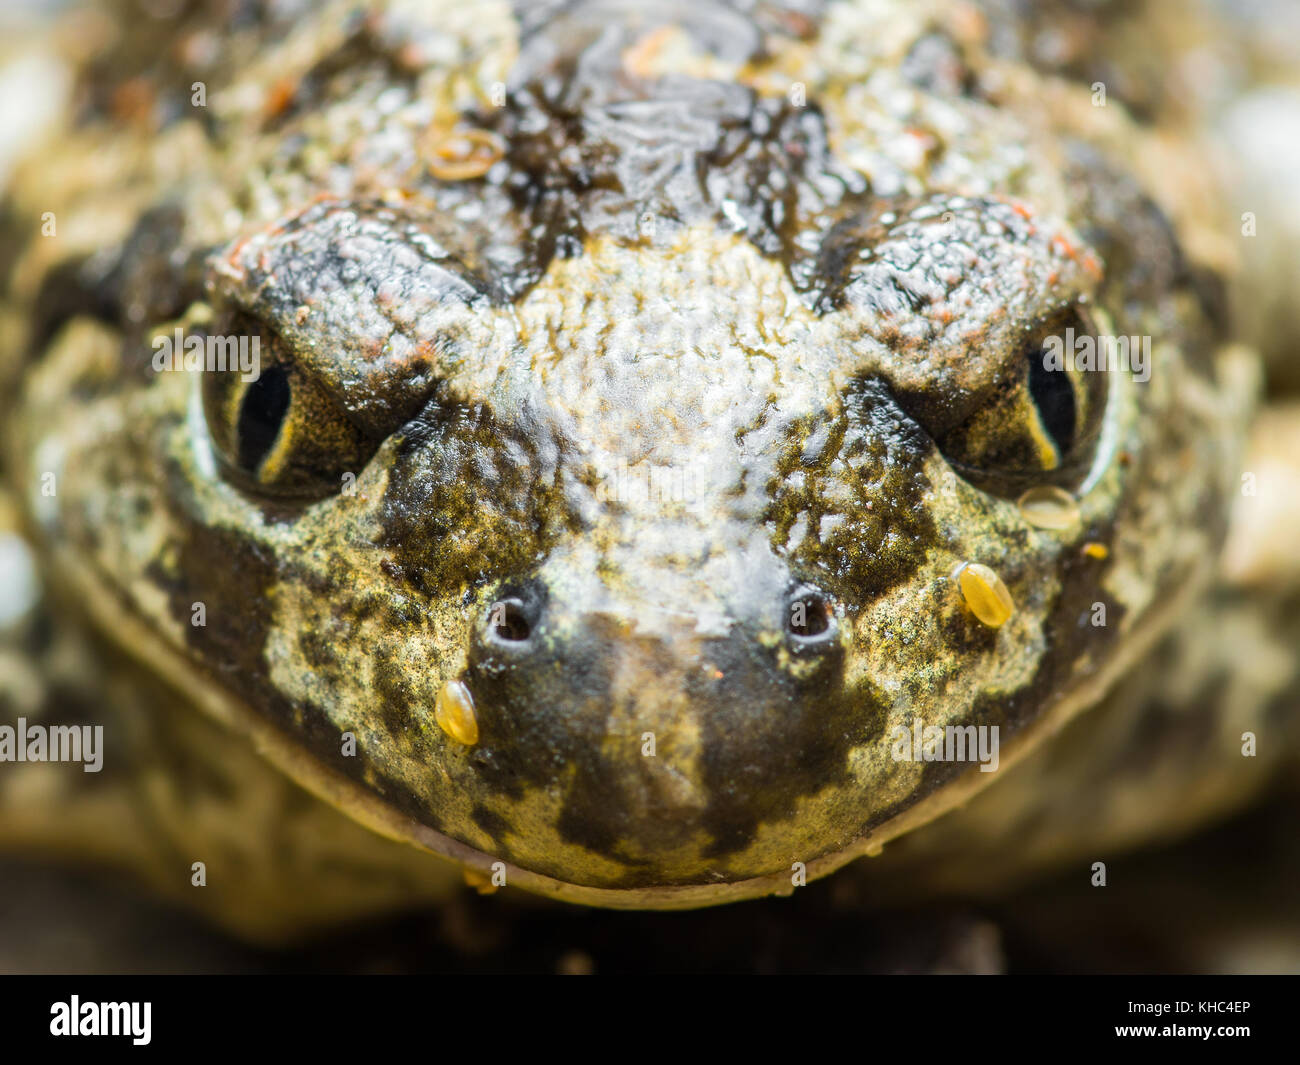 Angry Frog Reptile Portrait - Stock Image